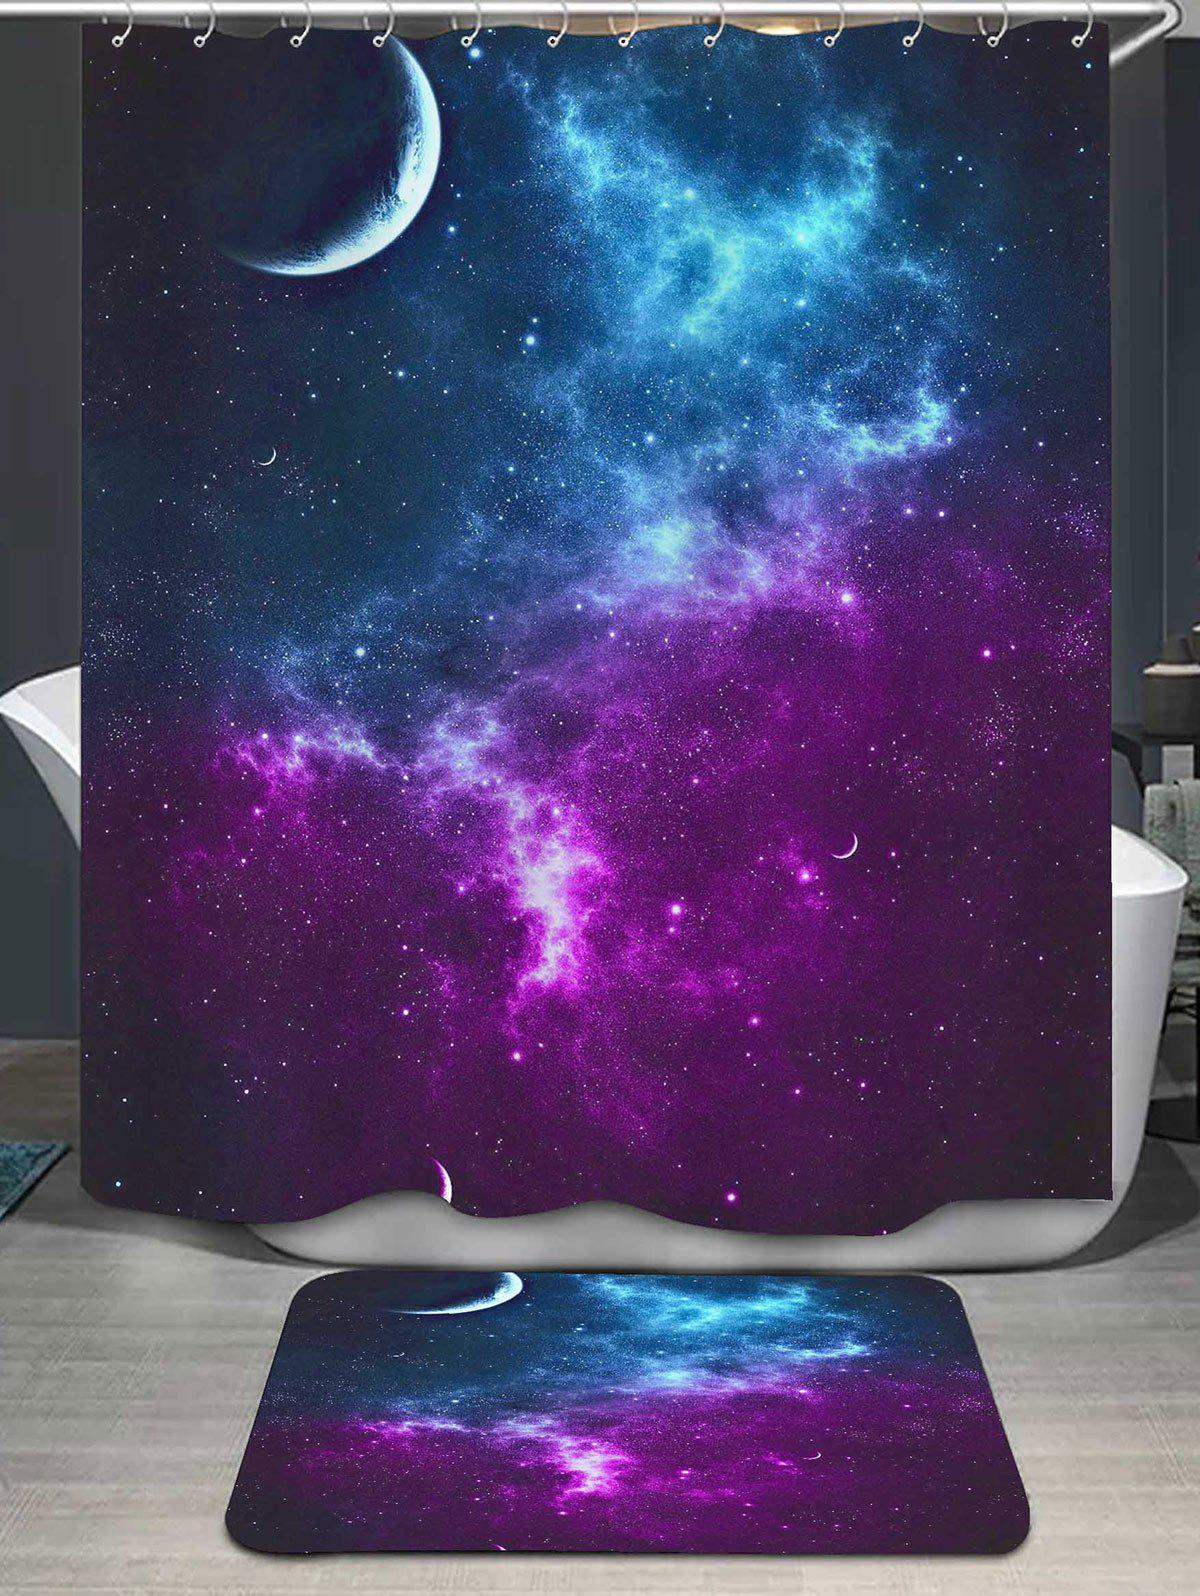 Galaxy Printed Shower Curtain and Area Rug